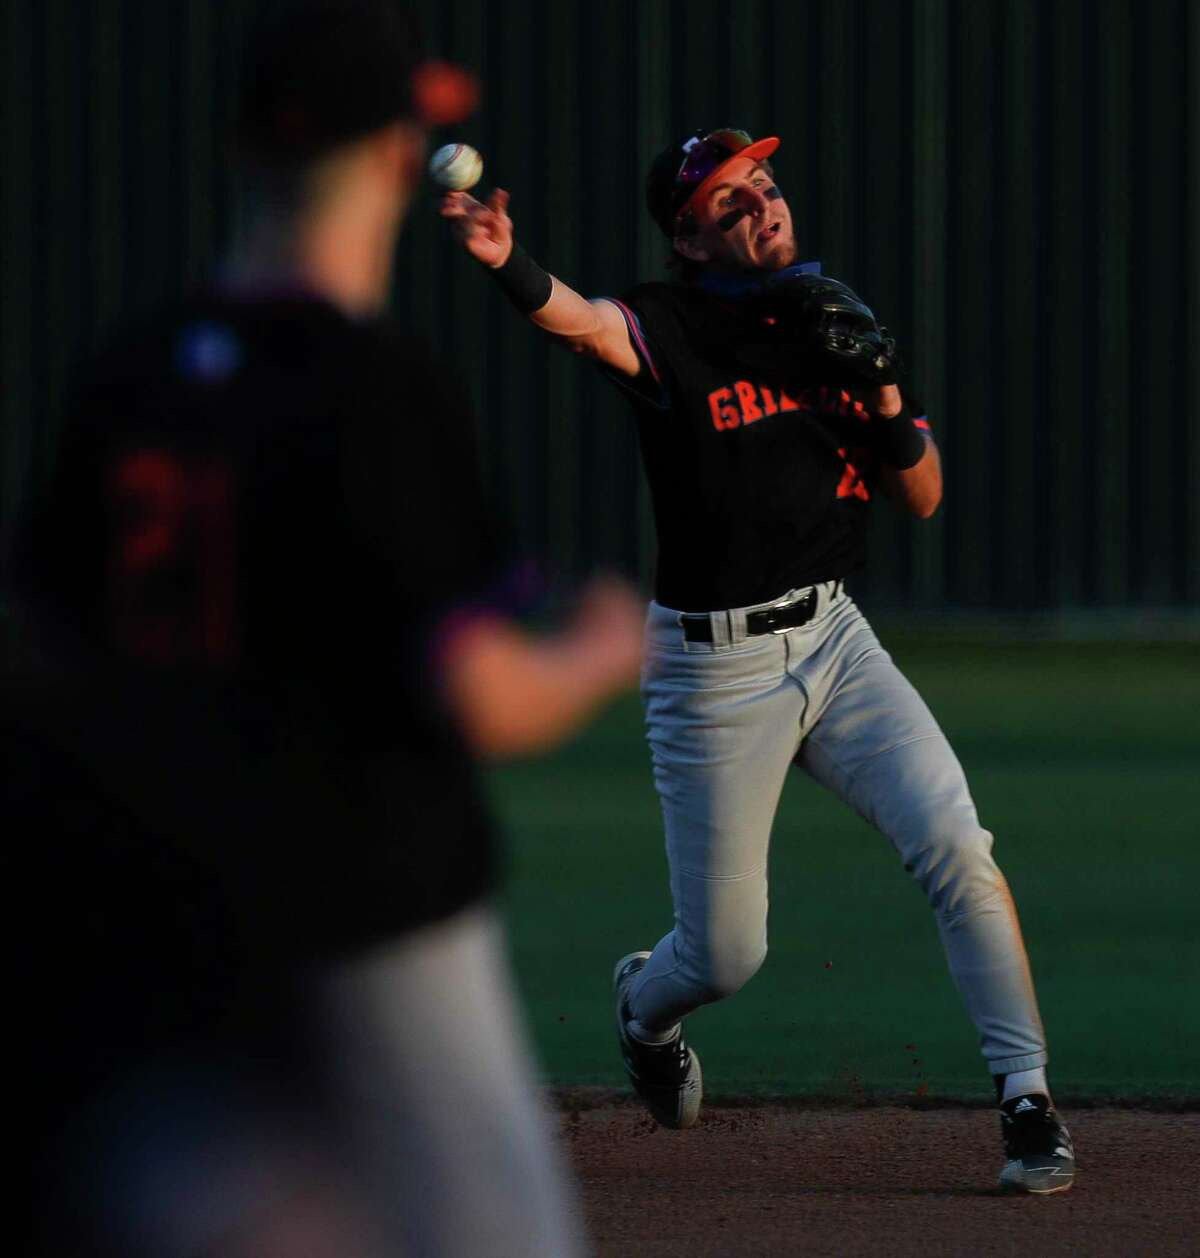 Grand Oaks second baseman Jace Farnsworth (18) throws out #7 of Willis during the second inning of a District 13-6A high school baseball game, Tuesday, March 23, 2021, in Willis